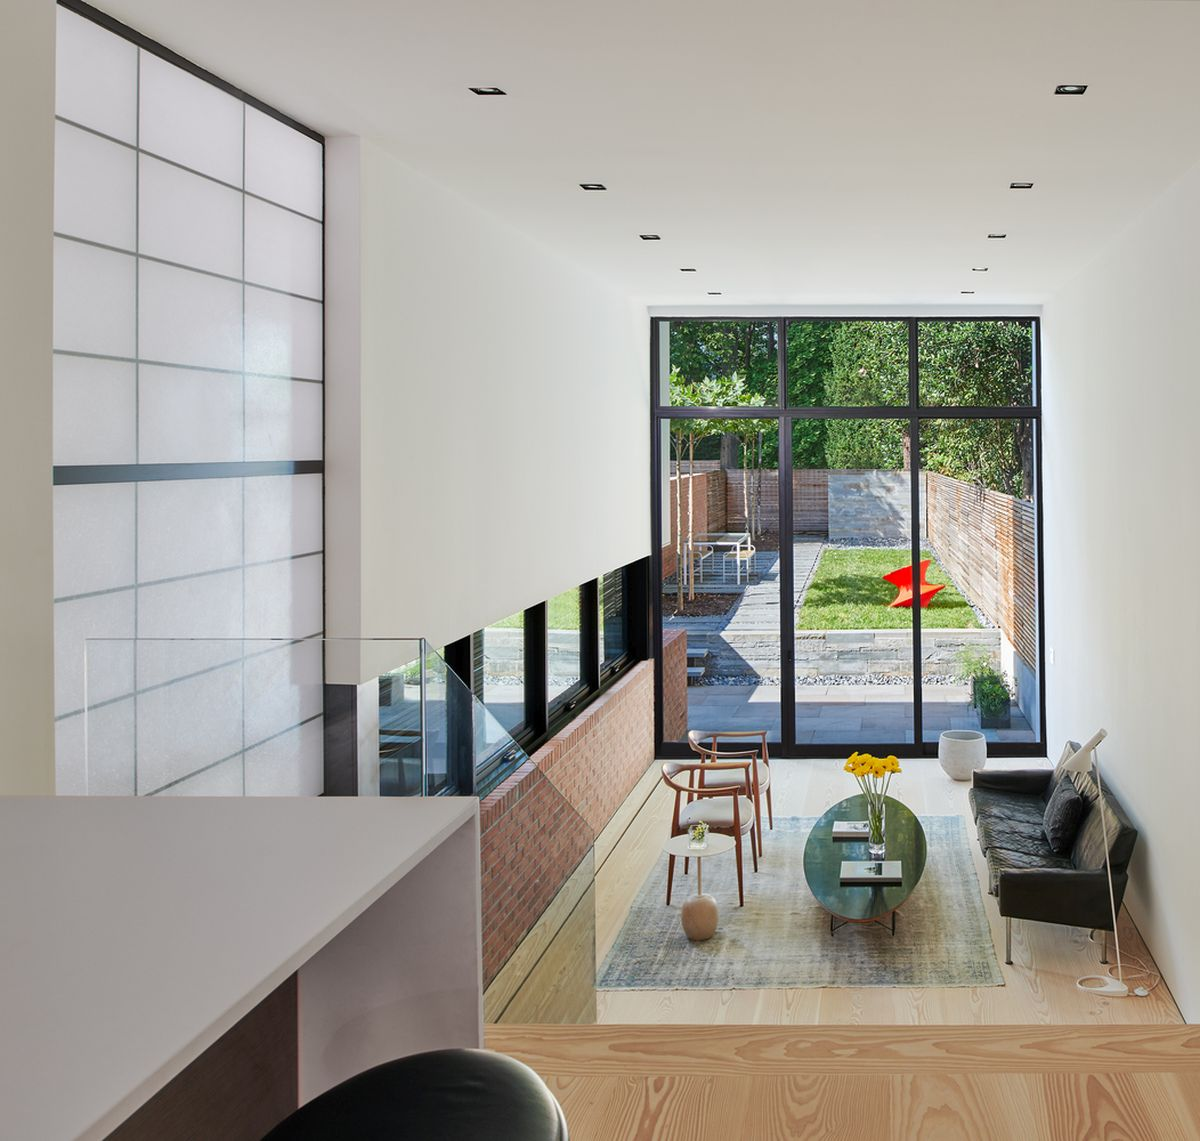 Even though the extension is very narrow, the two floors have high ceilings which helps them look bigger